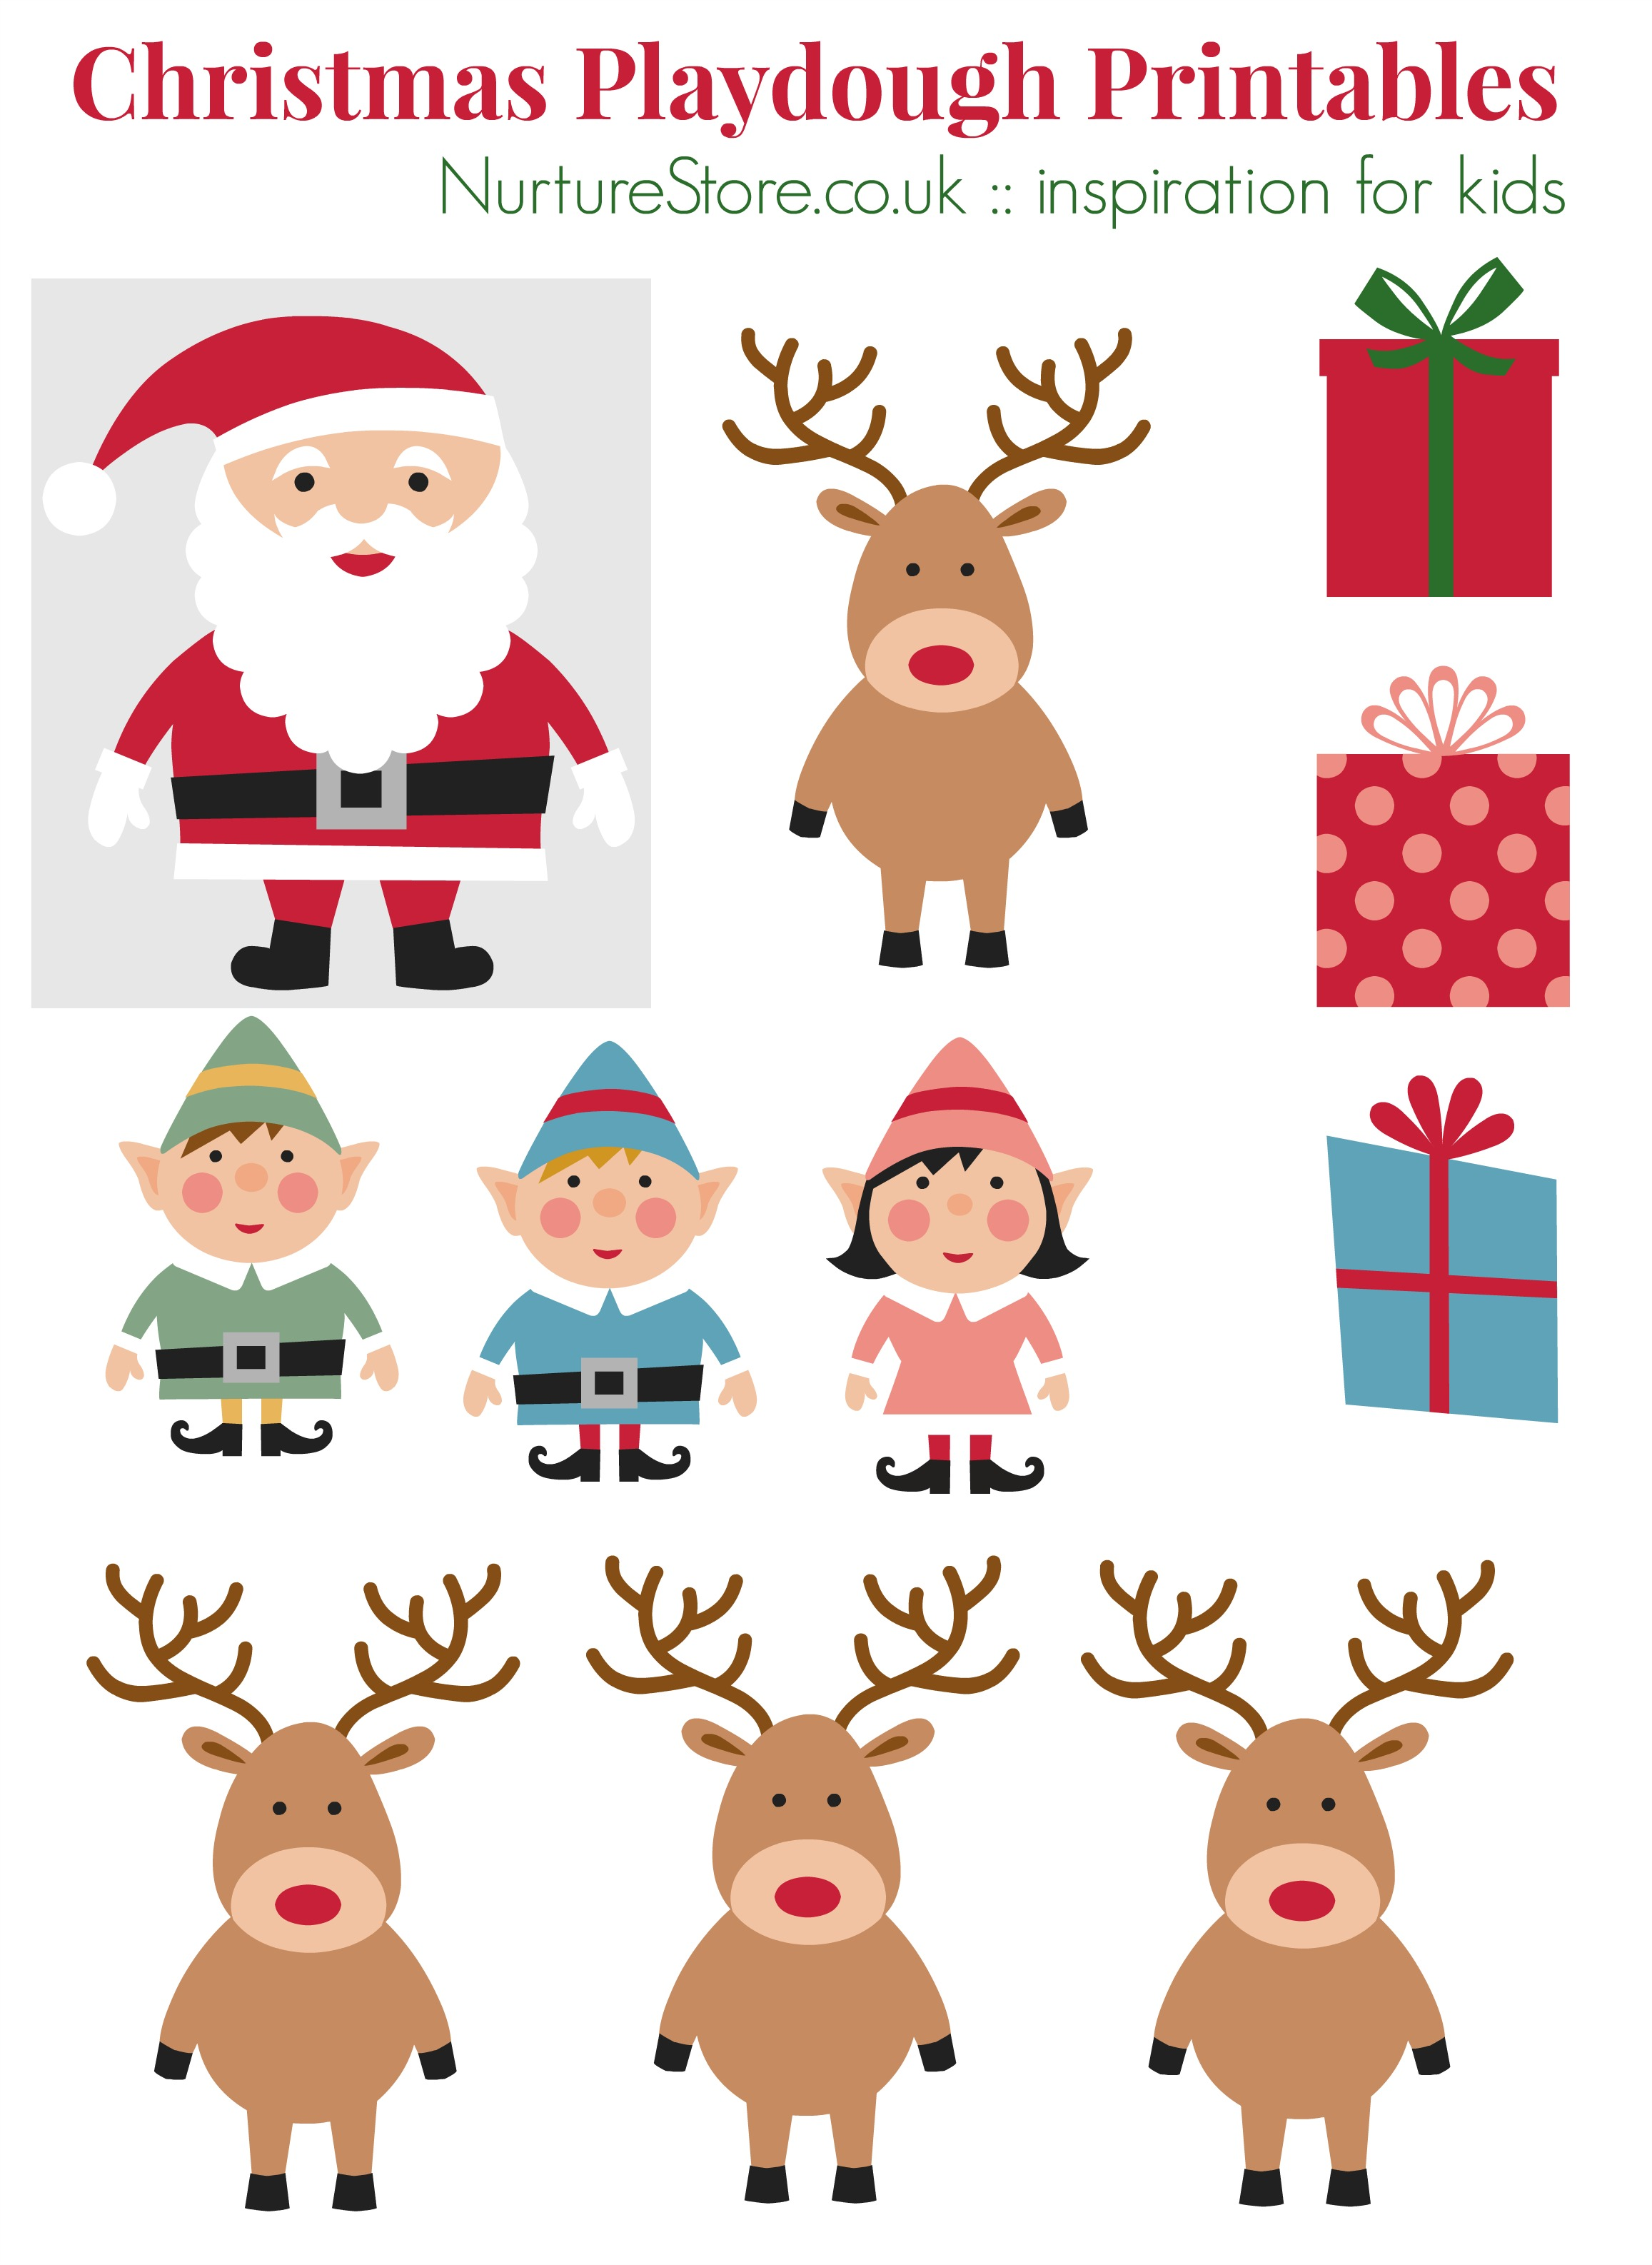 Father Christmas Puppet Printables For Playdough